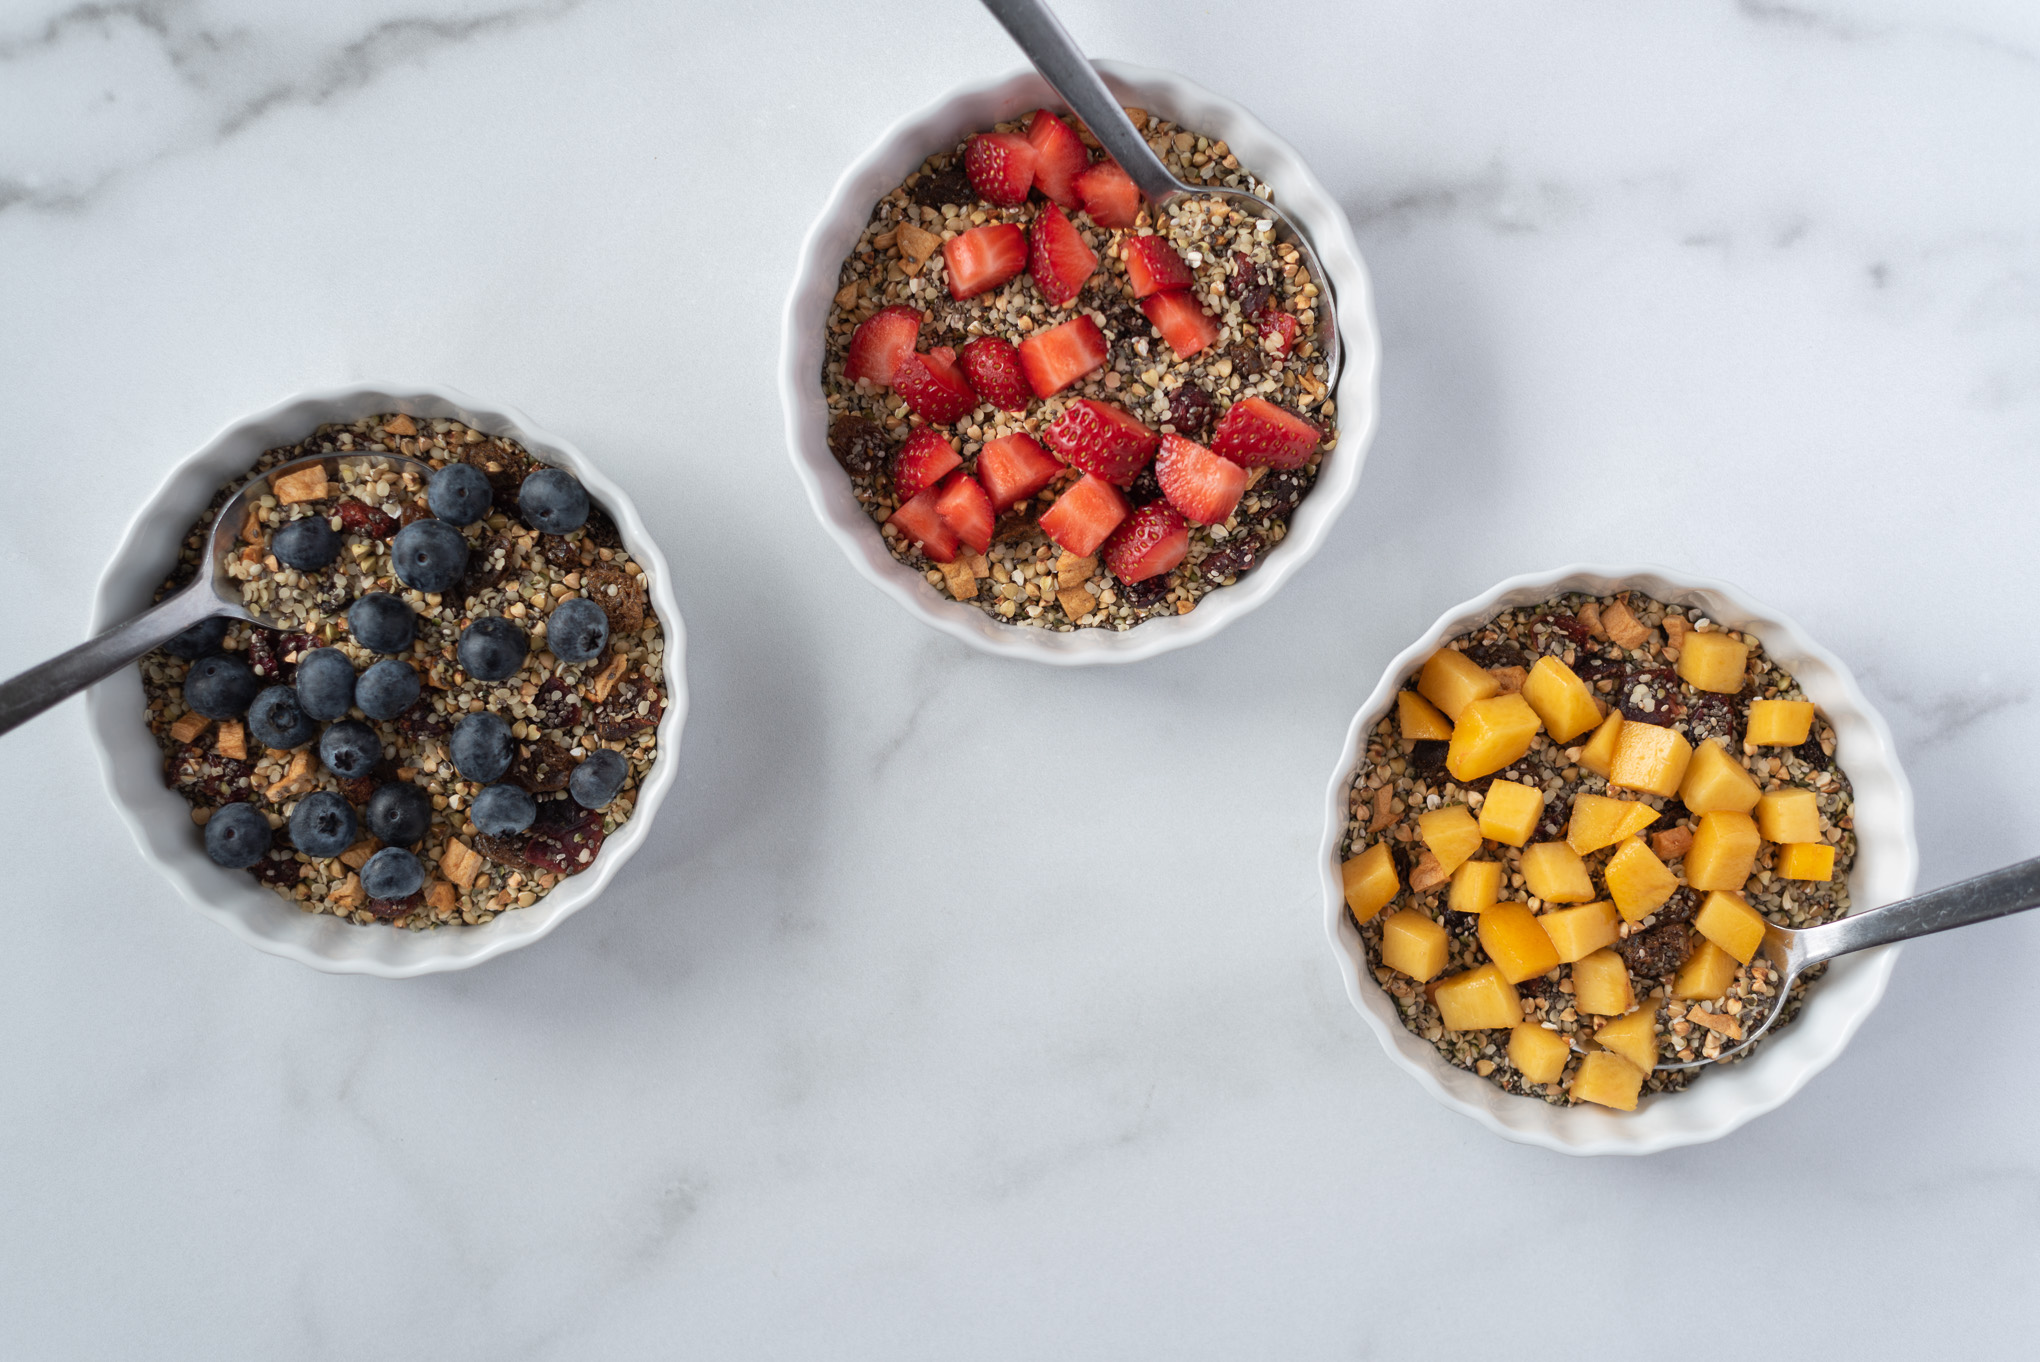 Three bowls of cereal with fruit